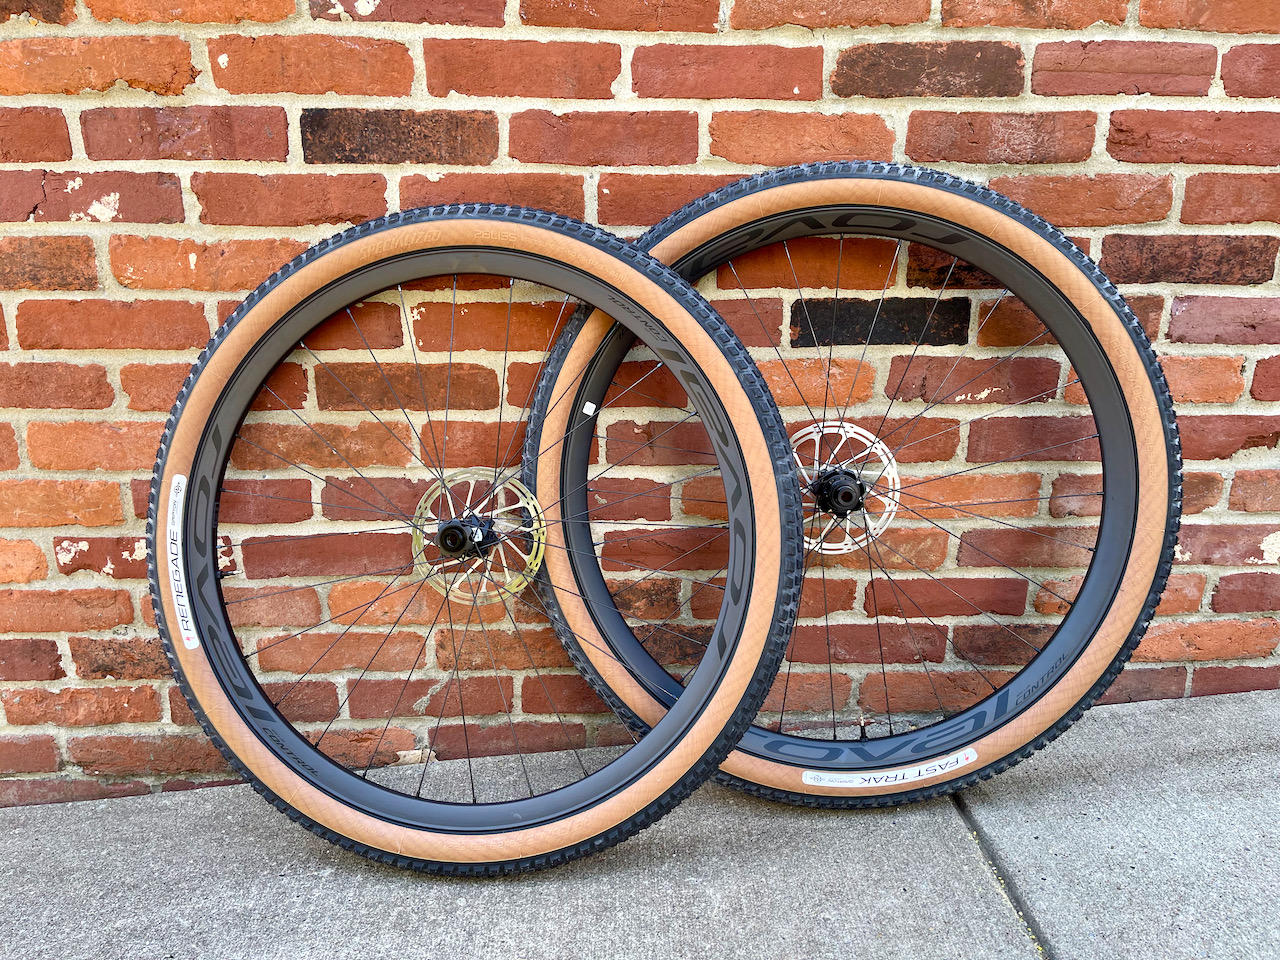 Specialized Control Carbon 29 Pair of wheels mounted